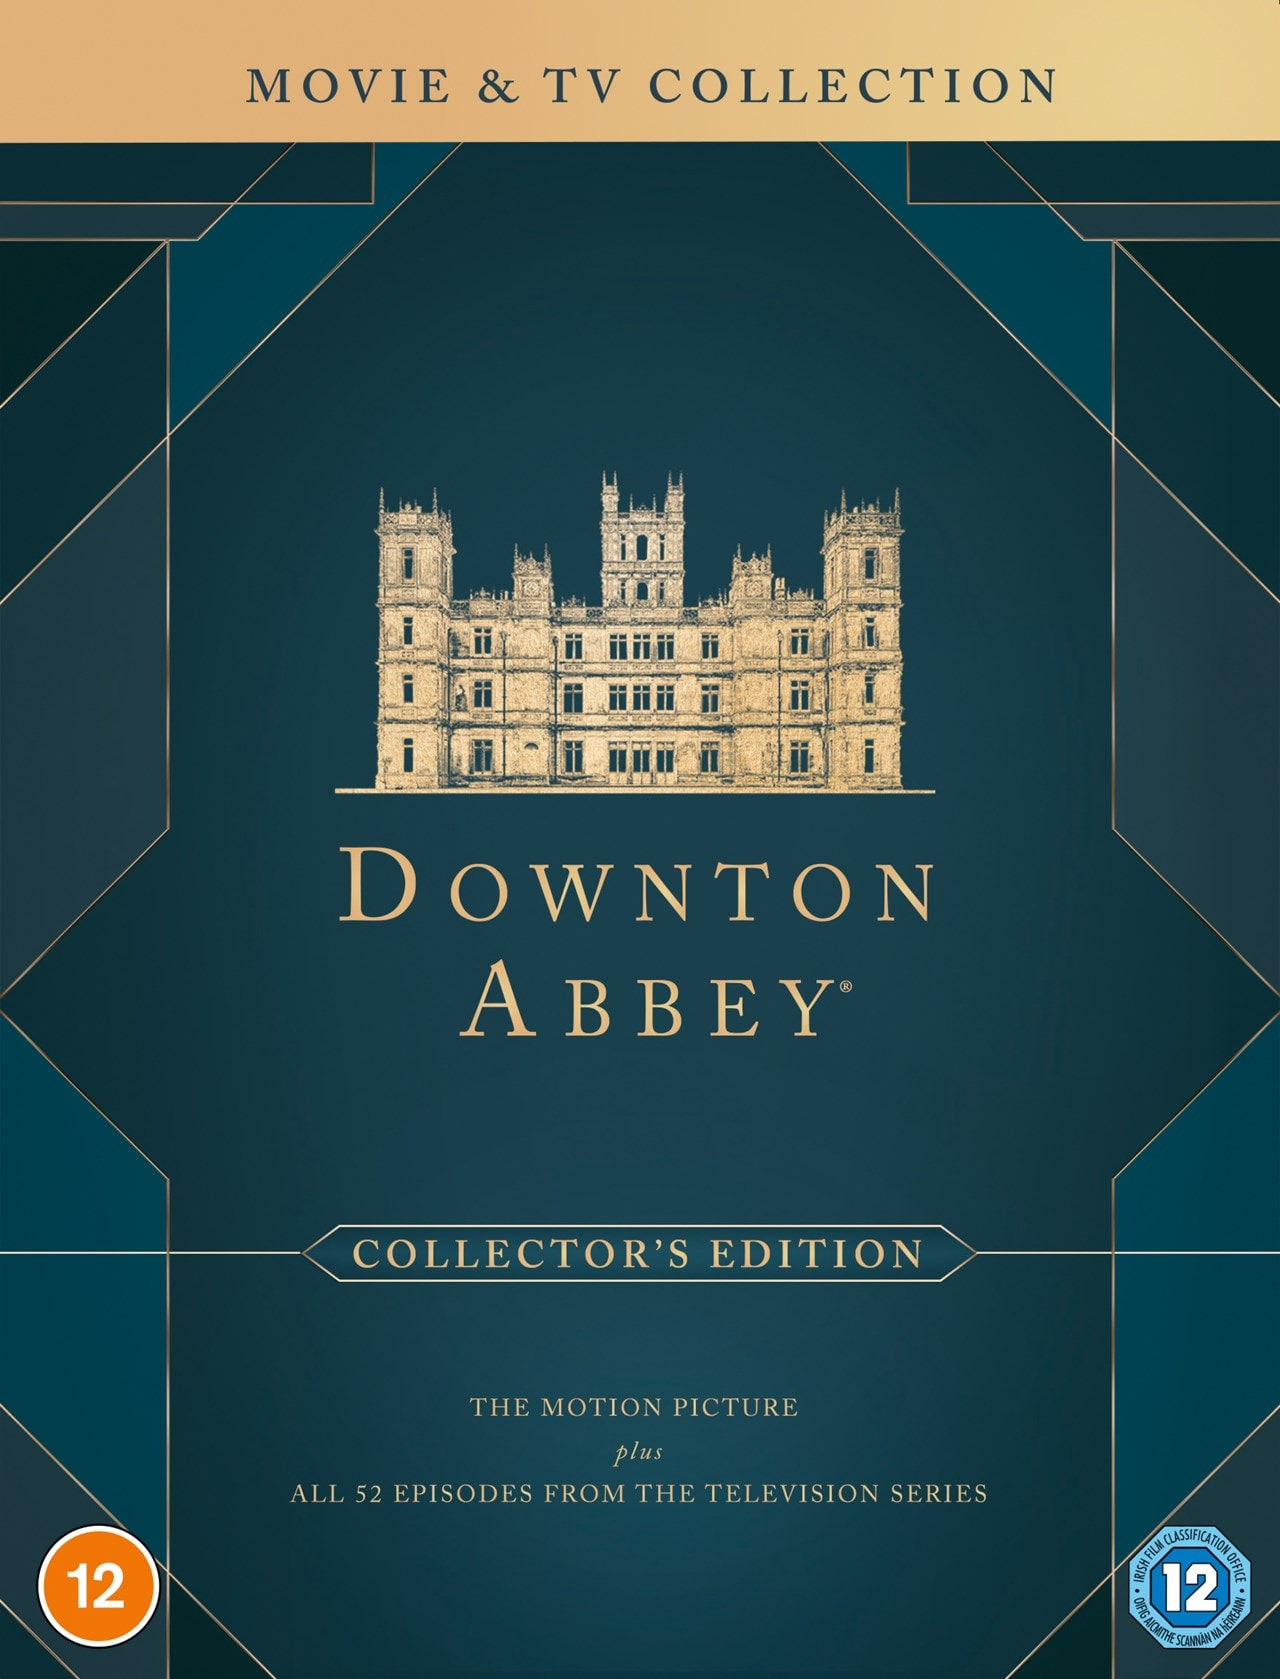 Downton Abbey Movie & TV Collection - 1